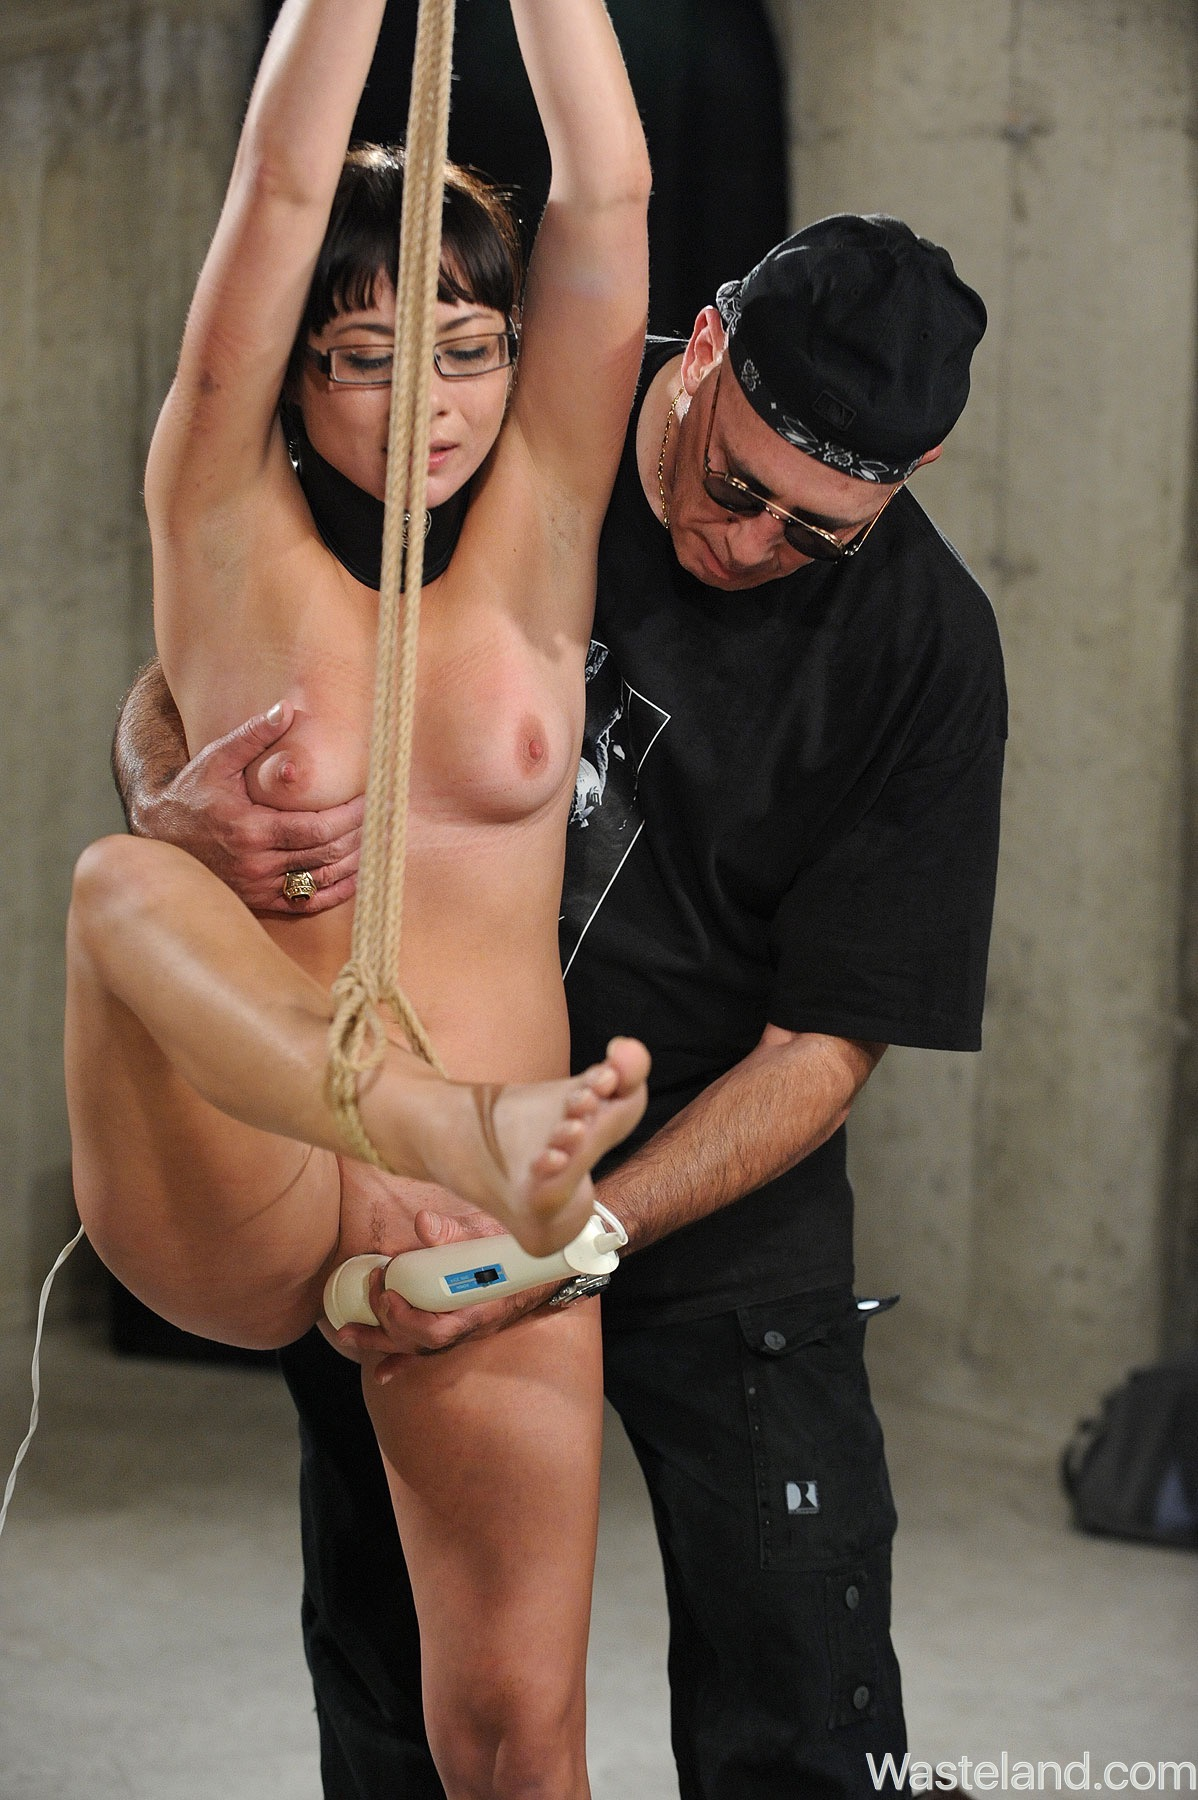 Bdsm flogging pictures